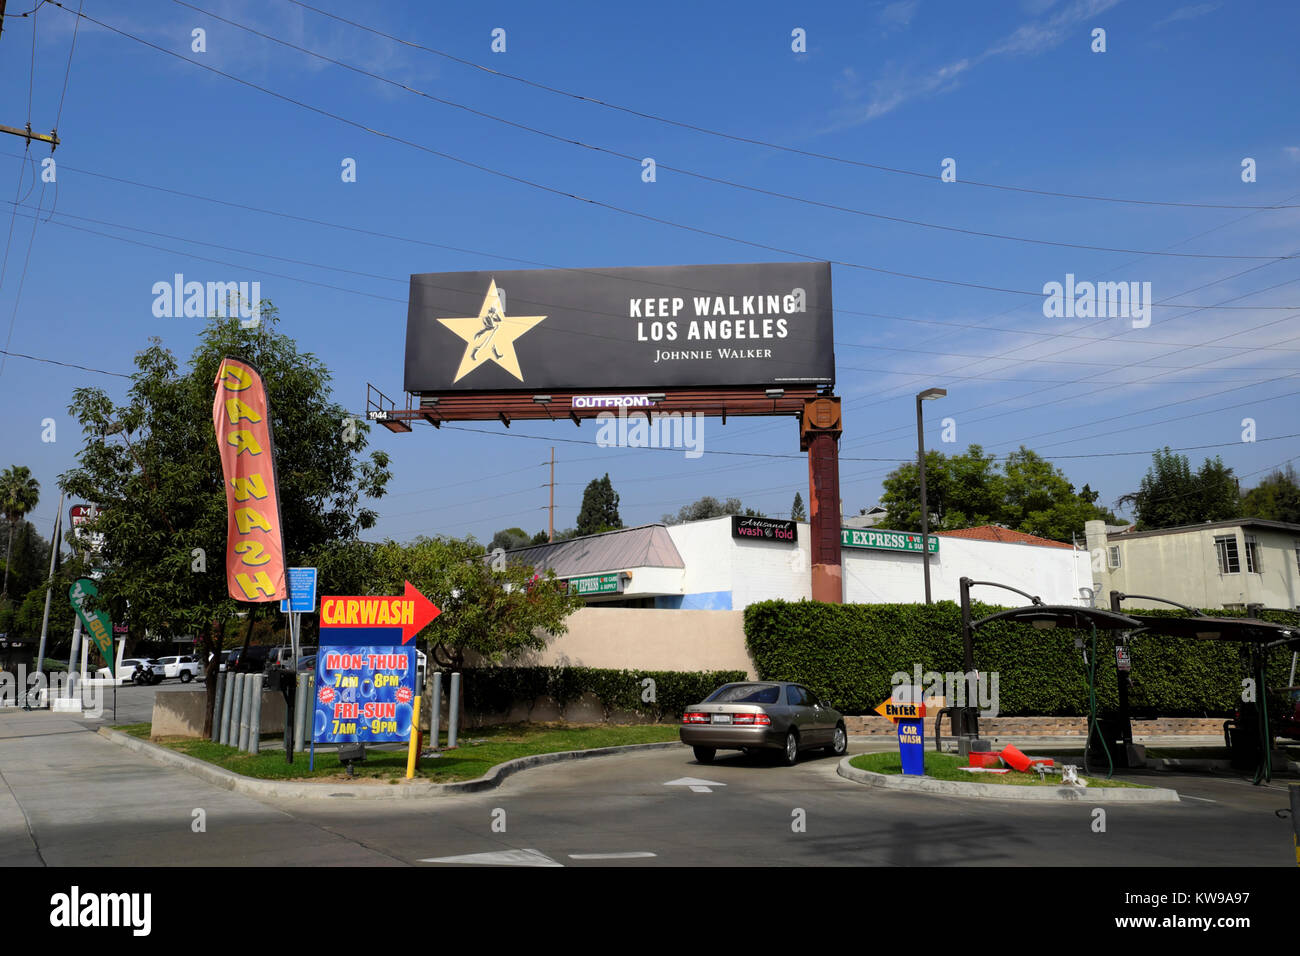 'Keep Walking Los Angeles' Johnnie Walker Scotch Whiskey advert,on a billboard in  Silverlake (Silver Lake) - Stock Image